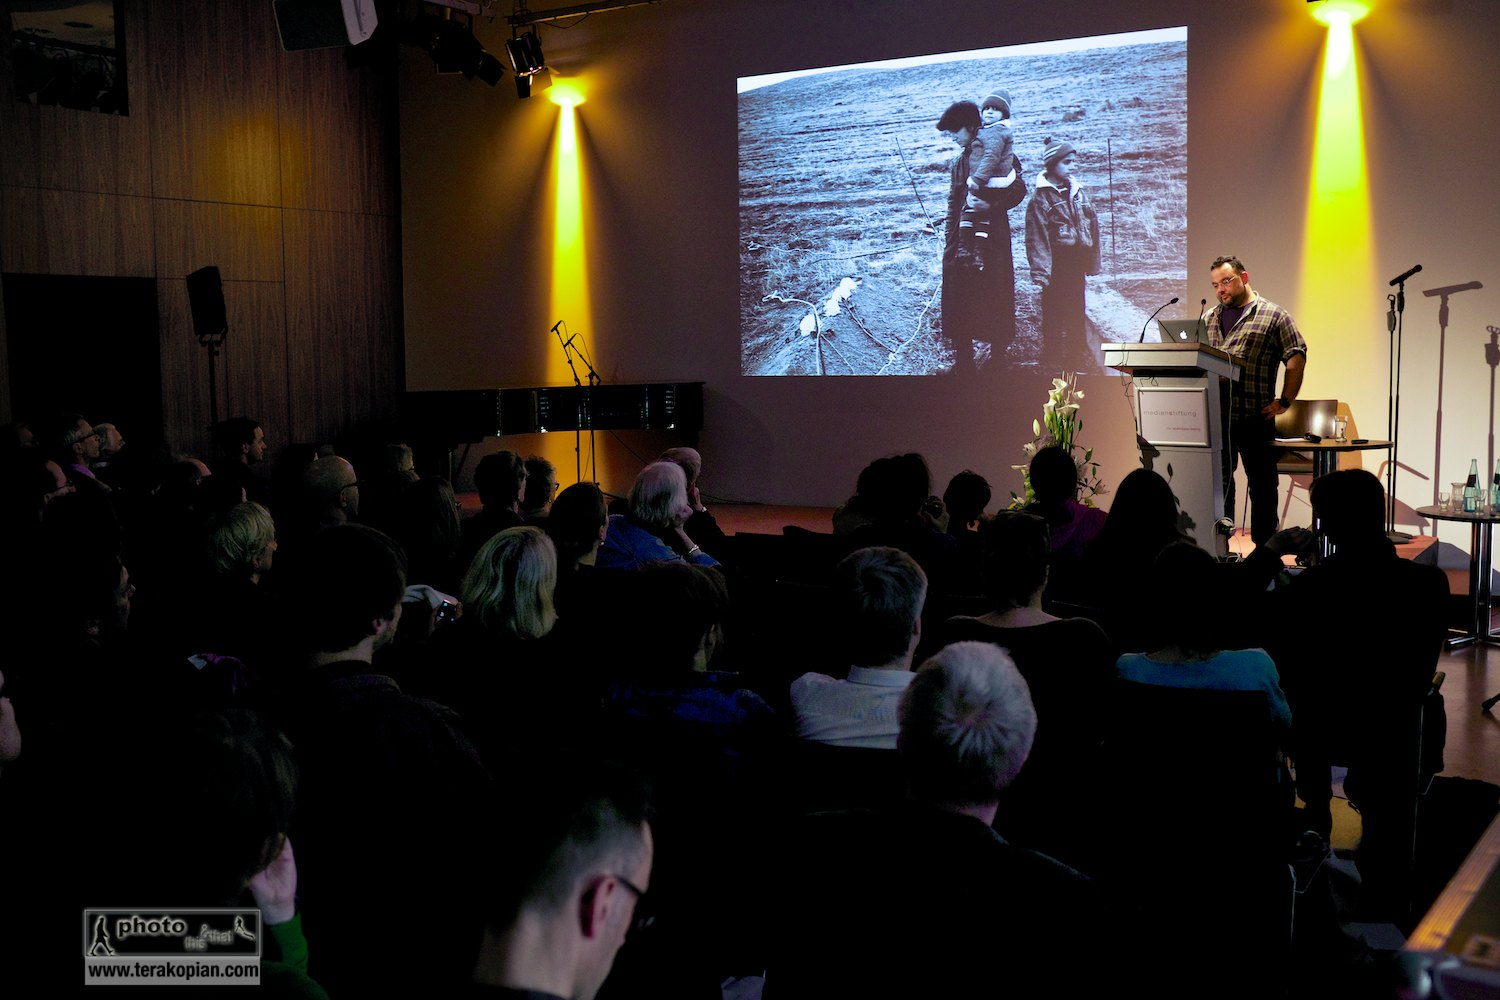 Edmond Terakopian giving a talk on Photography & Film to the IFC (International Features Conference), Media Campus (Medienstifftung der Sparkasse Leipzig), Poetenweg, Leipzig, Germany. May 14, 2014. Photo: Thomas Martin Gasser / @ThomasMGasser